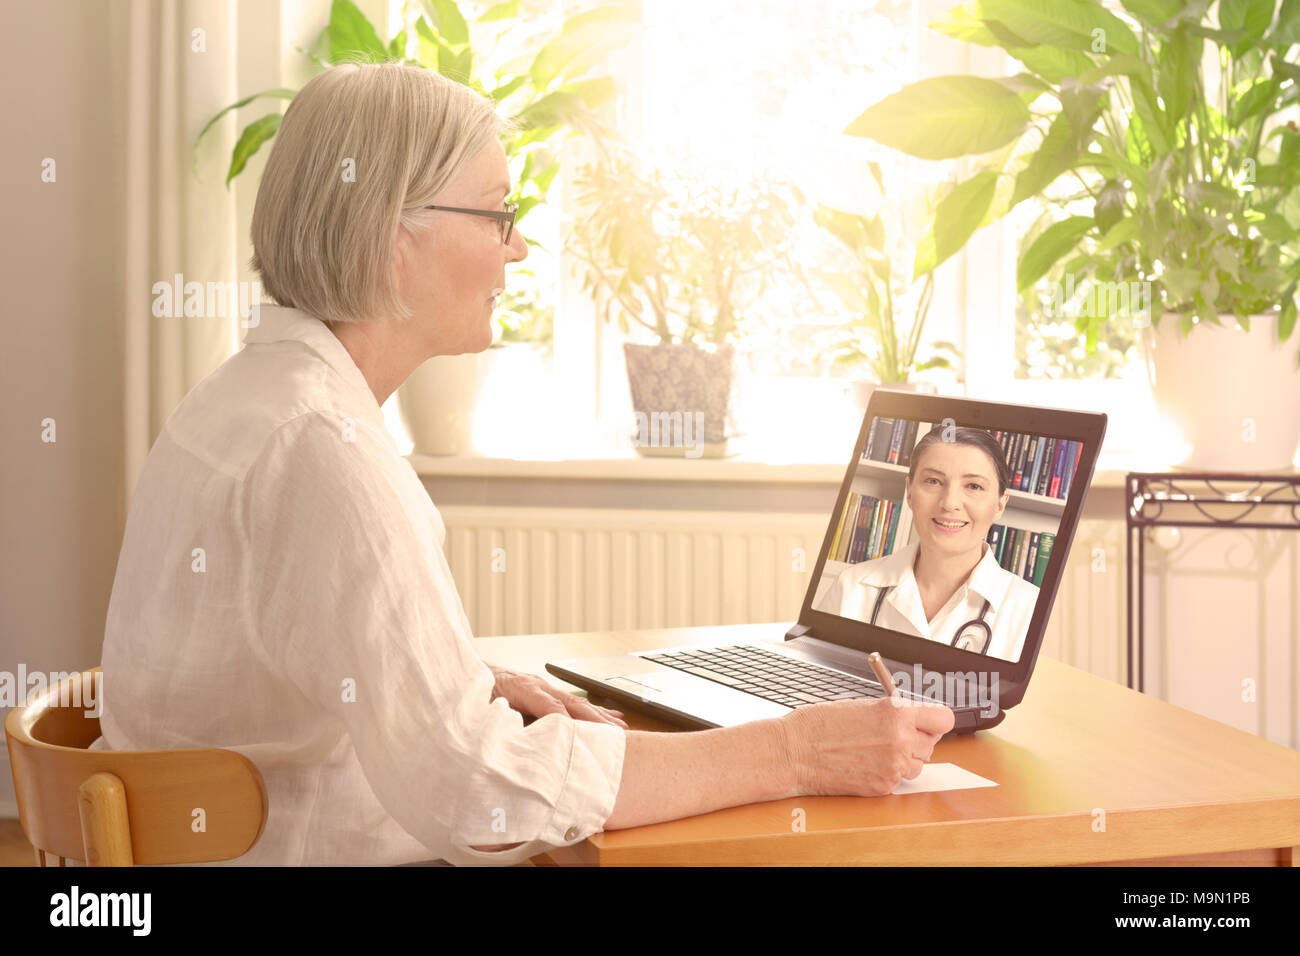 Senior woman in her sunny living room in front of a laptop making notes during a video call with her female doctor - Stock Image